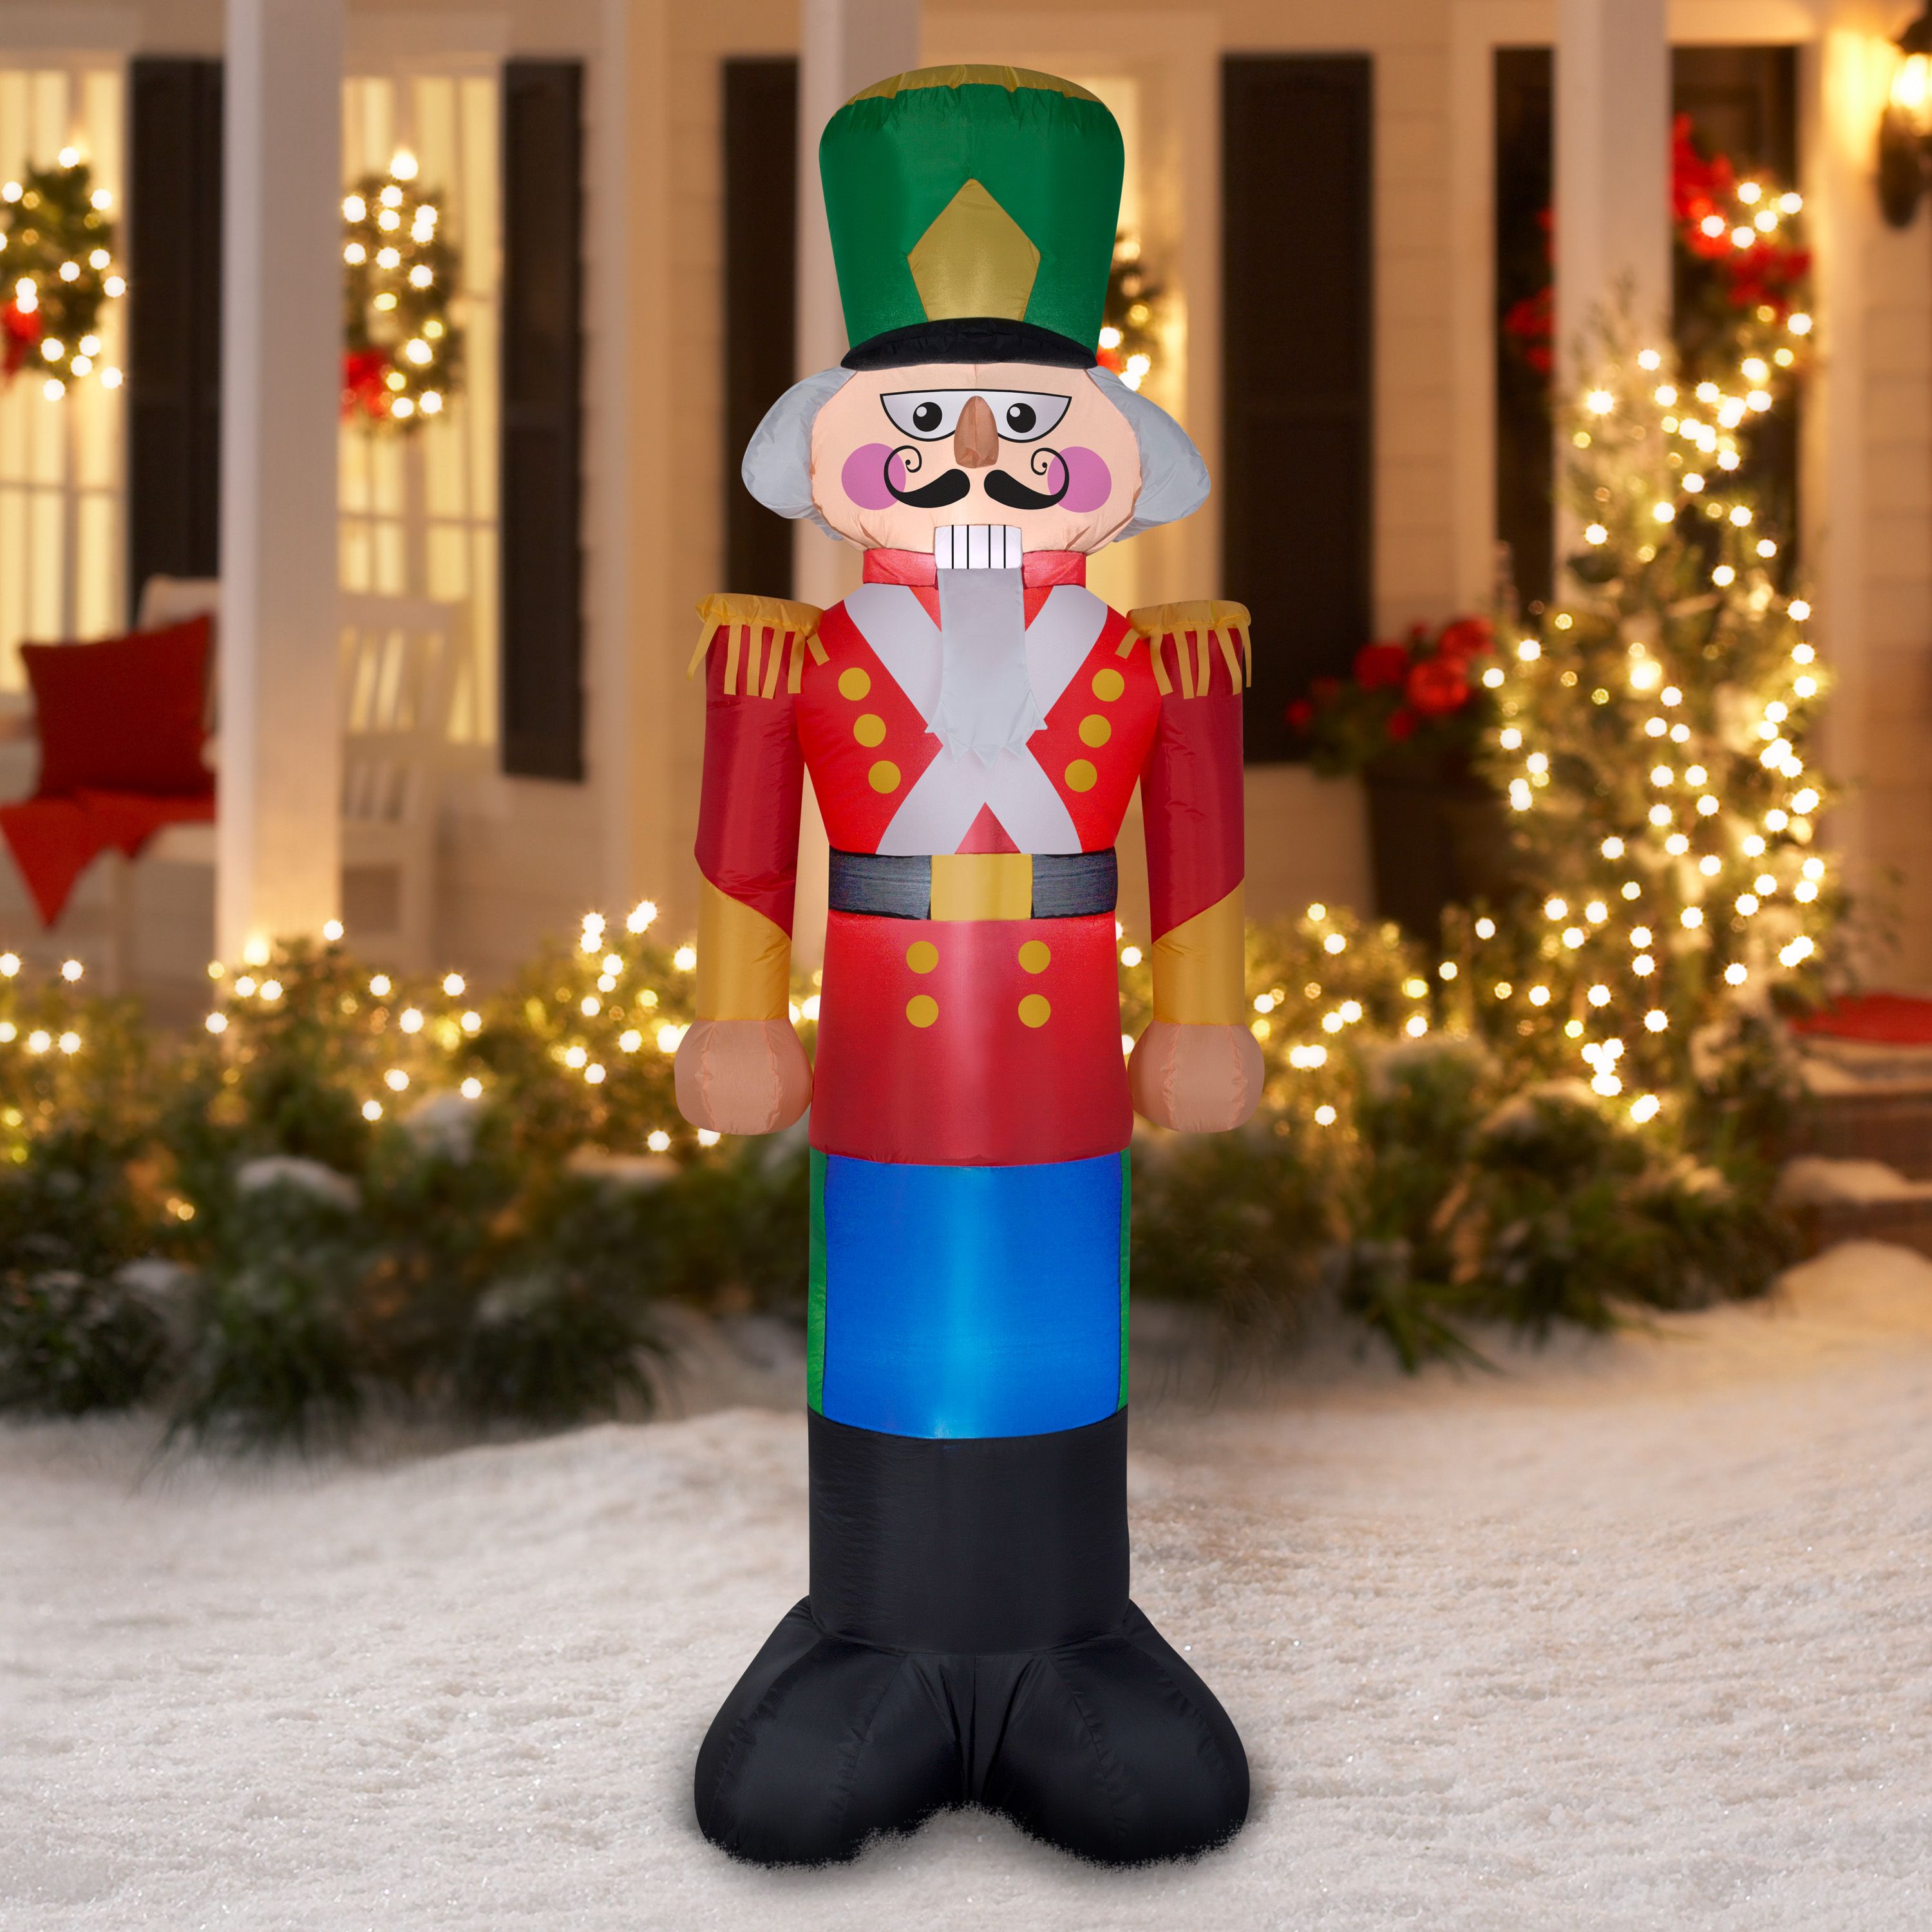 Airblown Inflatable Toy Soldier 7ft tall by